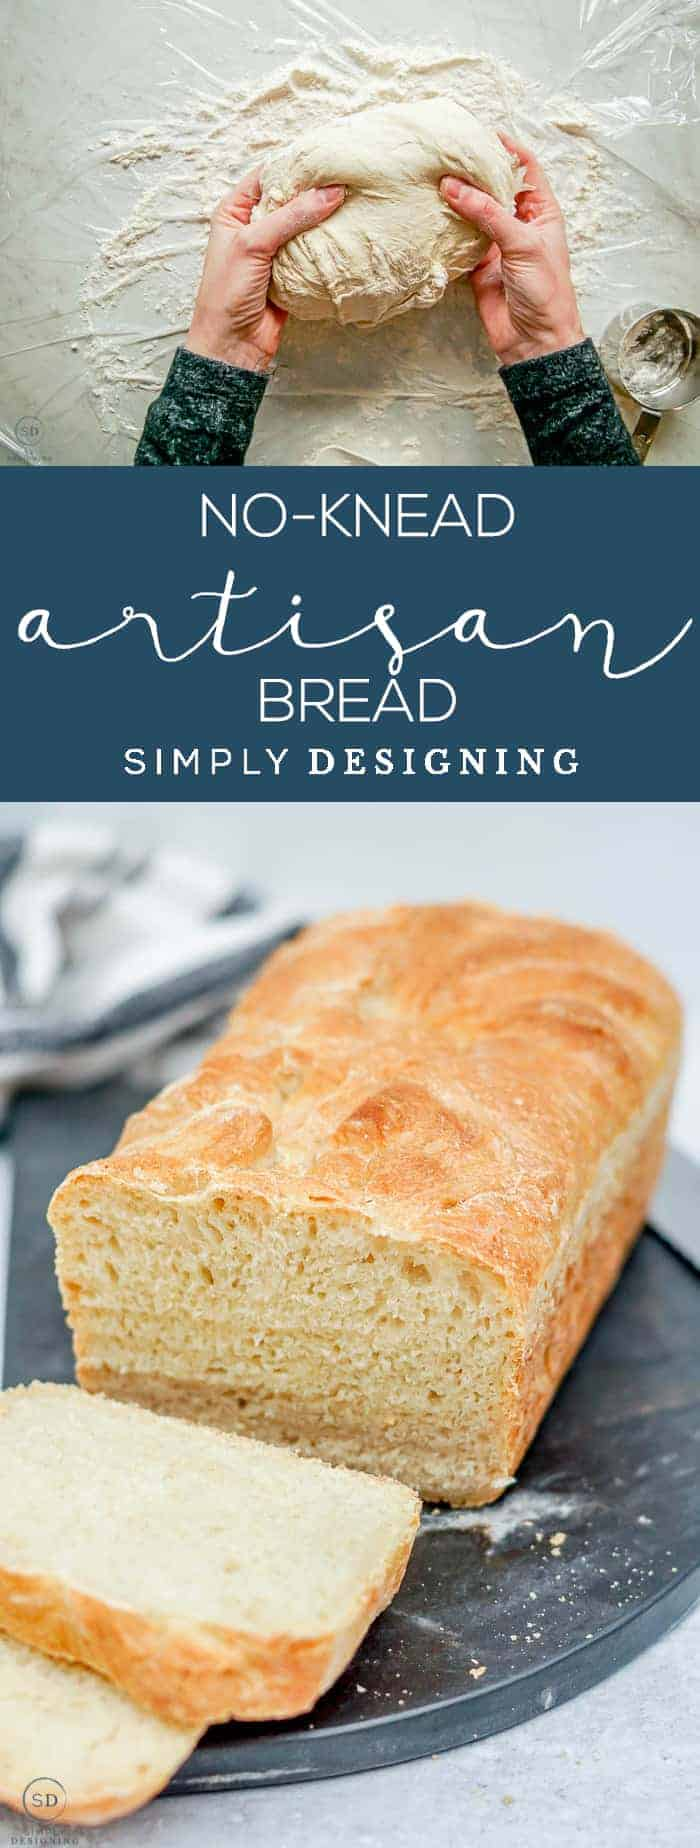 This no-knead artisan bread recipe is a fool-proof 5-minute bread that tastes like something you would get at a fancy restaurant but is super simple to make